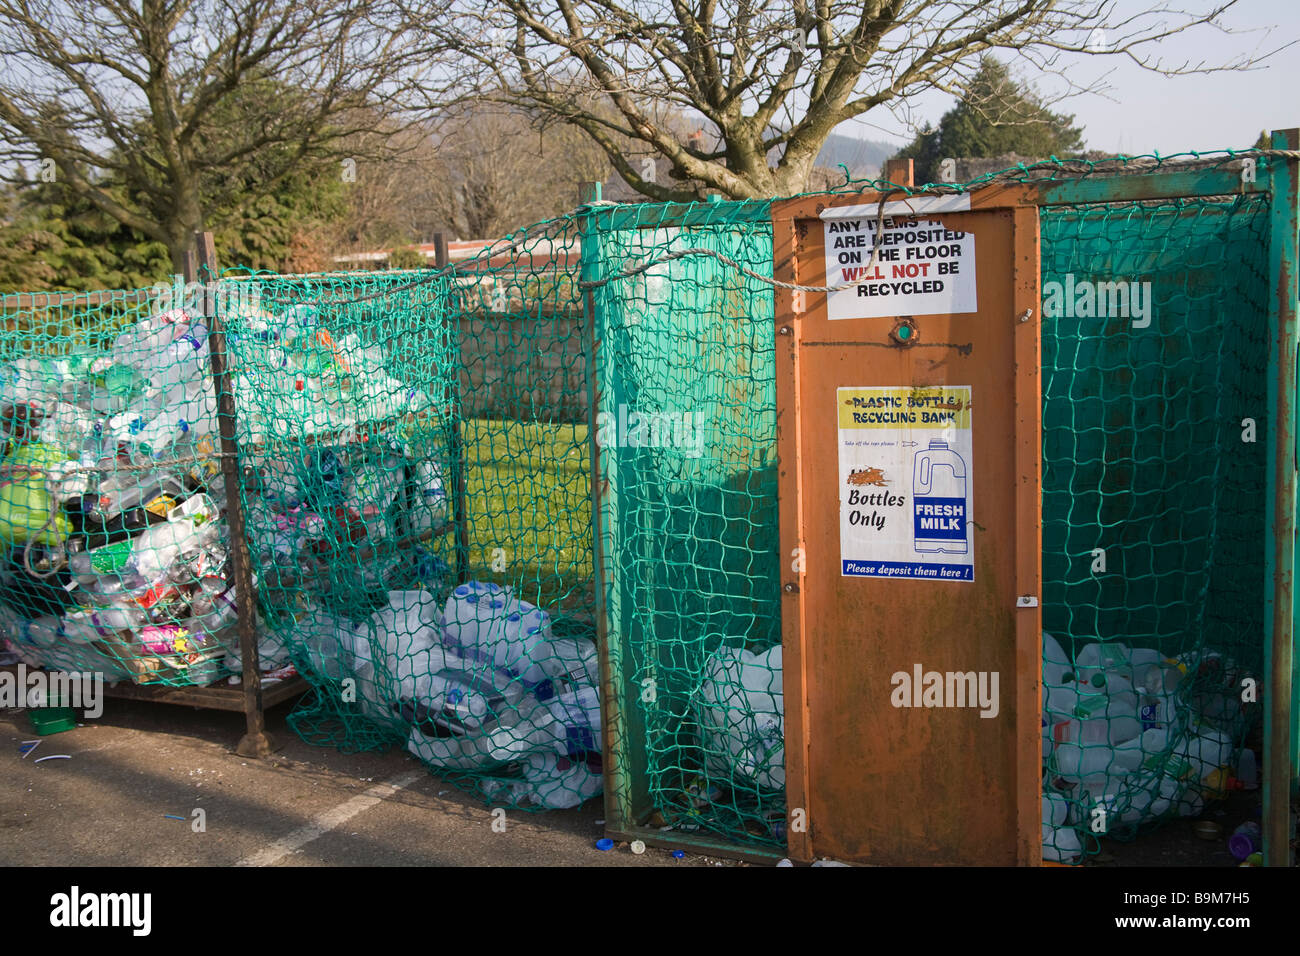 Wales UK Plastic bottle recycling facilities - Stock Image